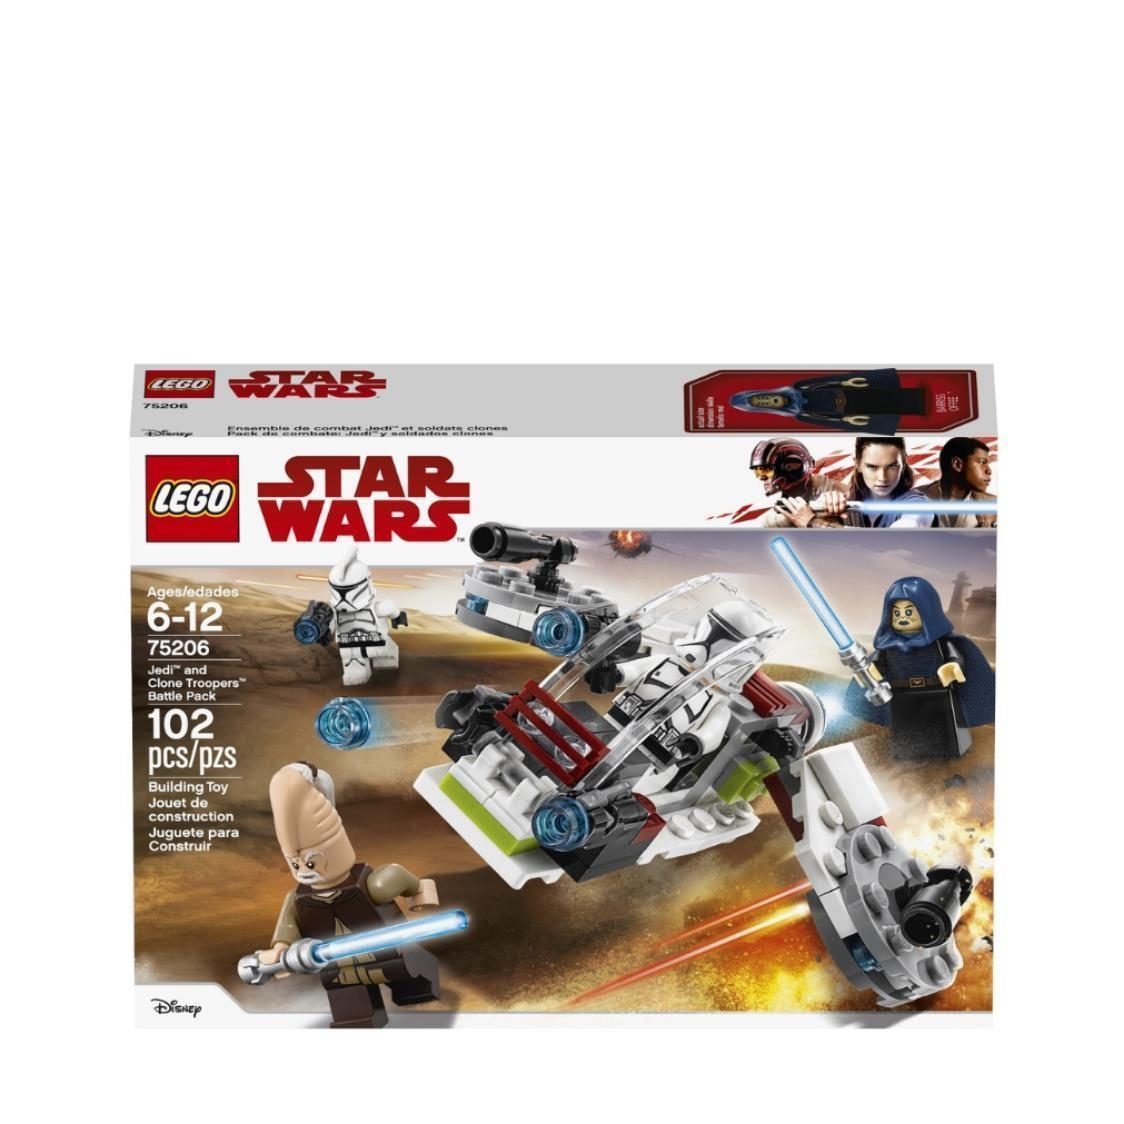 Jedi and Clone Troopers Battle Pack 75206